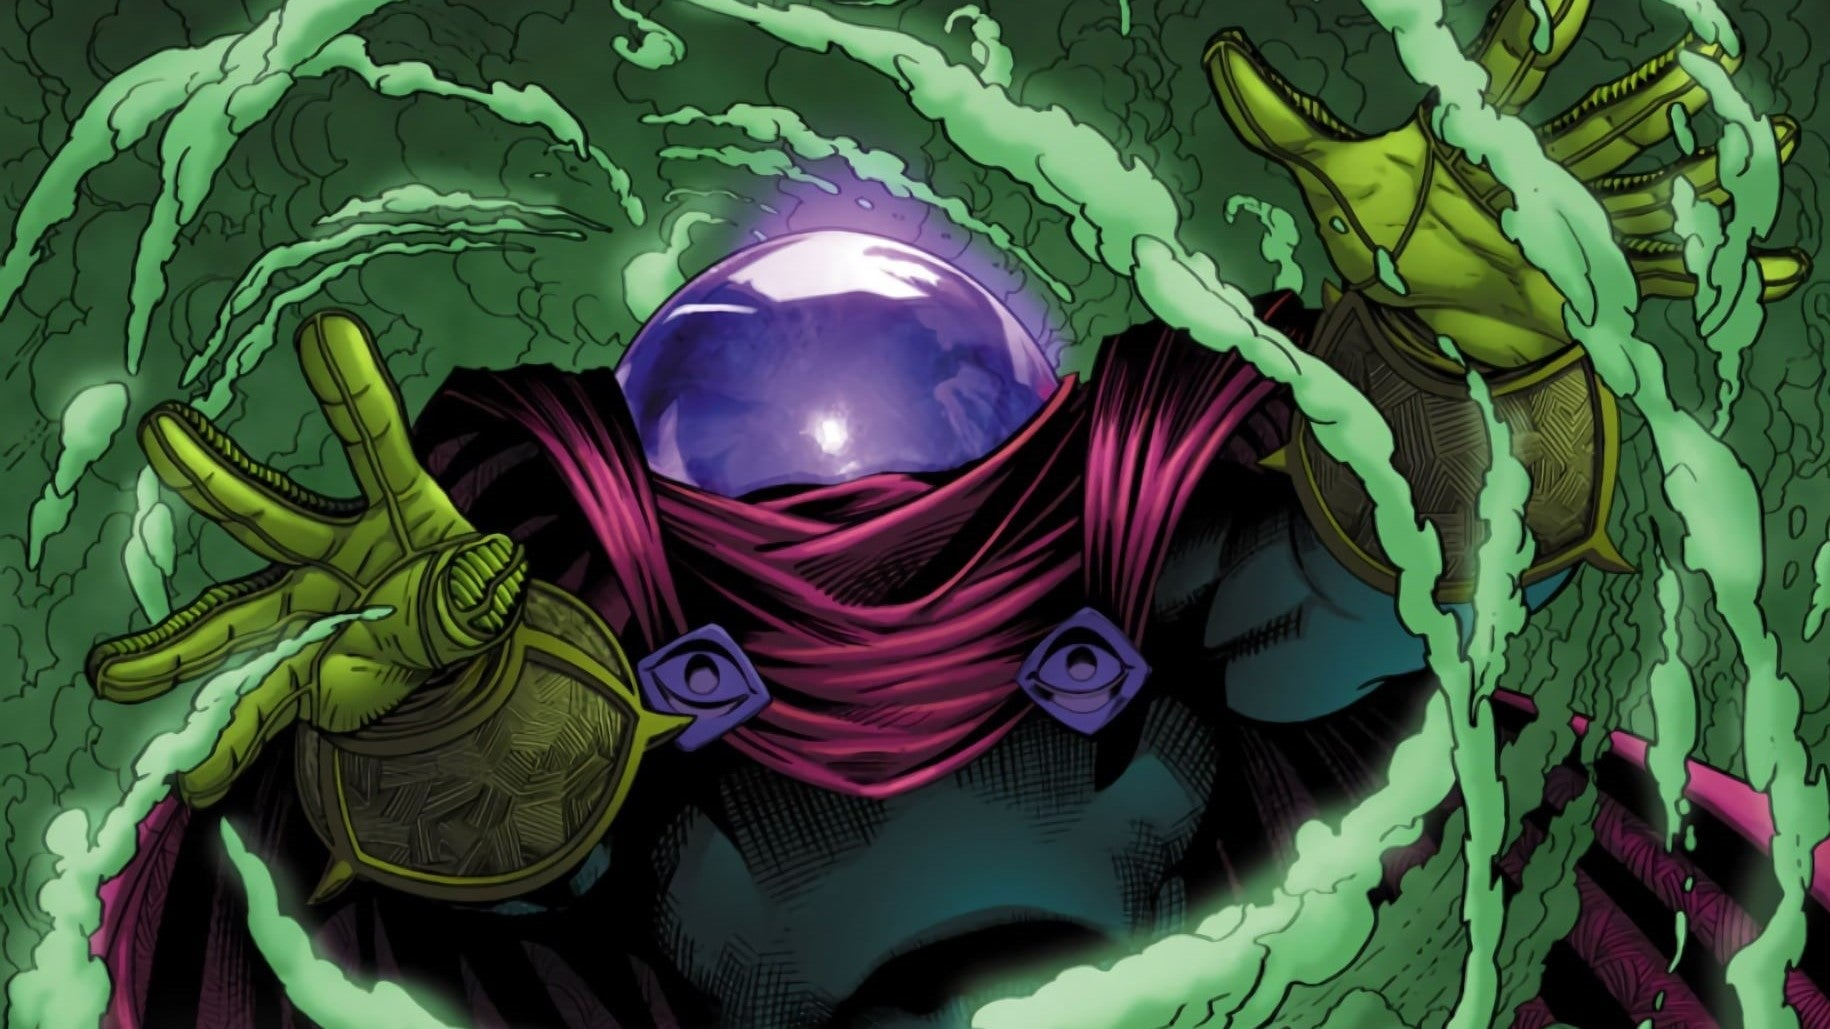 Demystifying Mysterio: A mentalist looks at Spider-Man: Far From Home's magical character